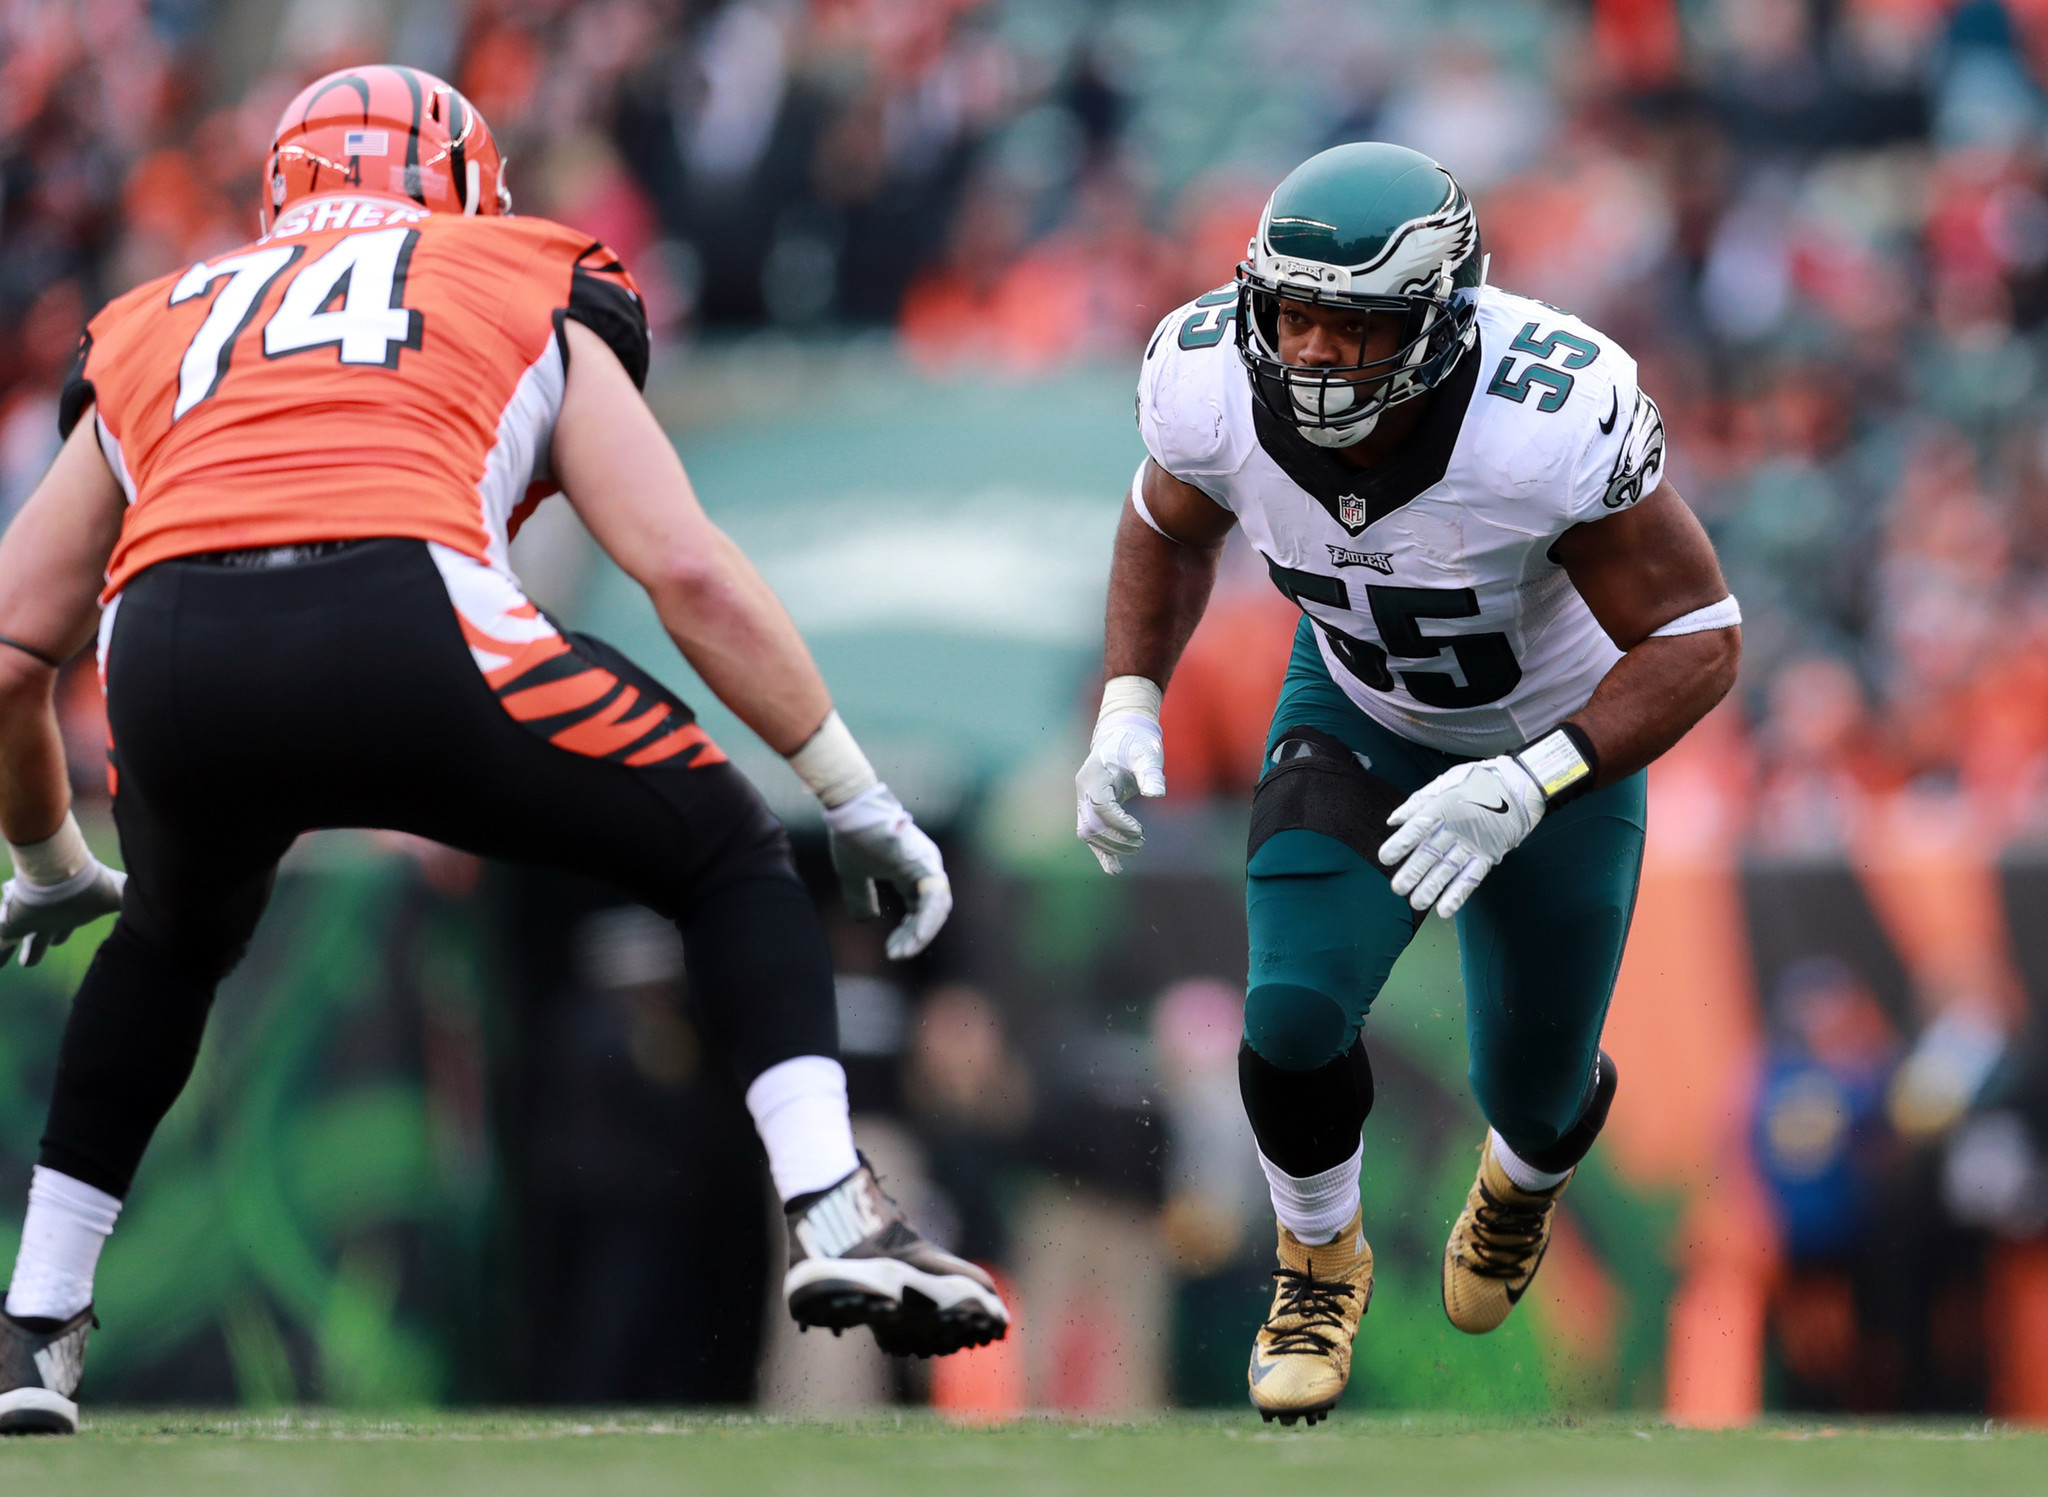 e argument for why Eagles DE Brandon Graham is still underrated